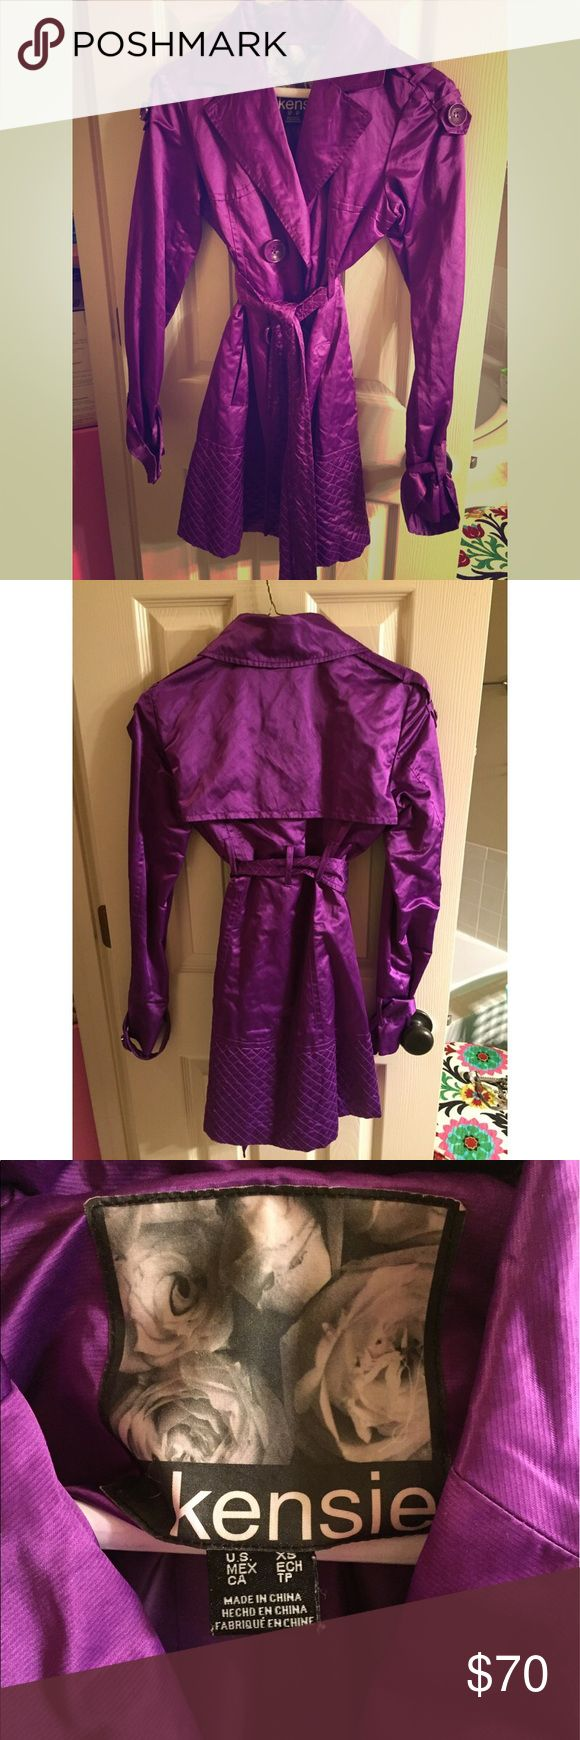 (NWOT) Kensie Purple Trench Coat (NWOT) Kensie Purple Trench Coat. It's a size XS but fits like a small/medium. Although I cut the tags off after purchasing it, it has never been worn & has just been hanging up in my closet waiting for it's new owner. Paid $158 + tax for this beautiful coat. It really is a beautiful shade of purple, and the giant buttons accessorize it perfectly 💜. Kensie Jackets & Coats Trench Coats